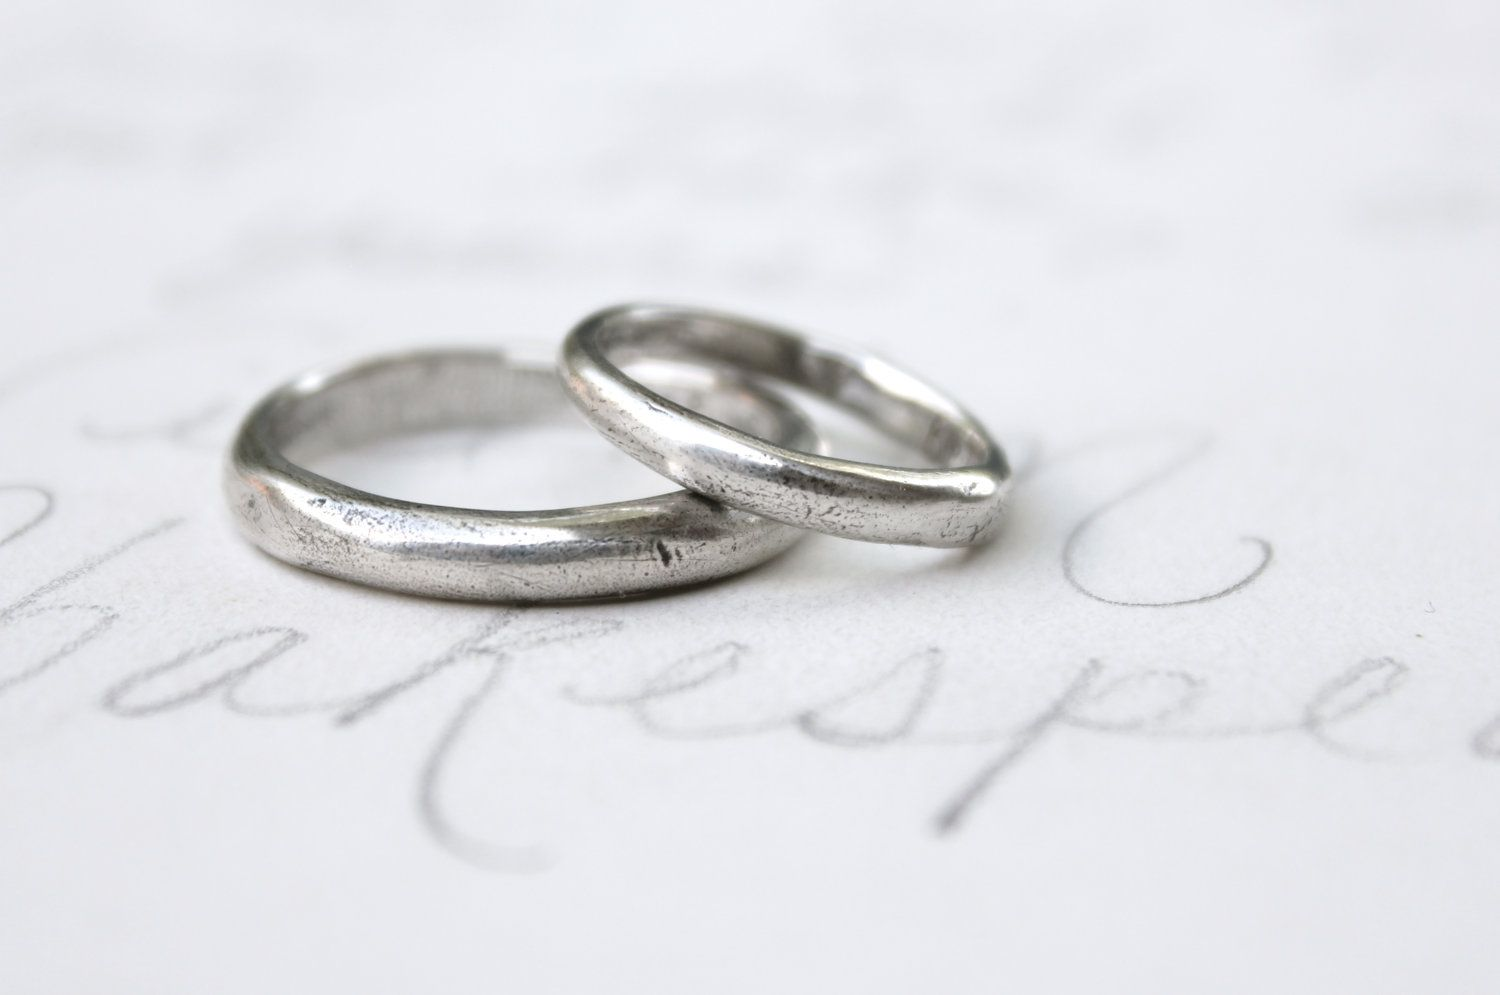 Simple Wedding Ring Band Set Recycled Silver Rustic Domed Viking Custom Relic Rings Via Etsy 269